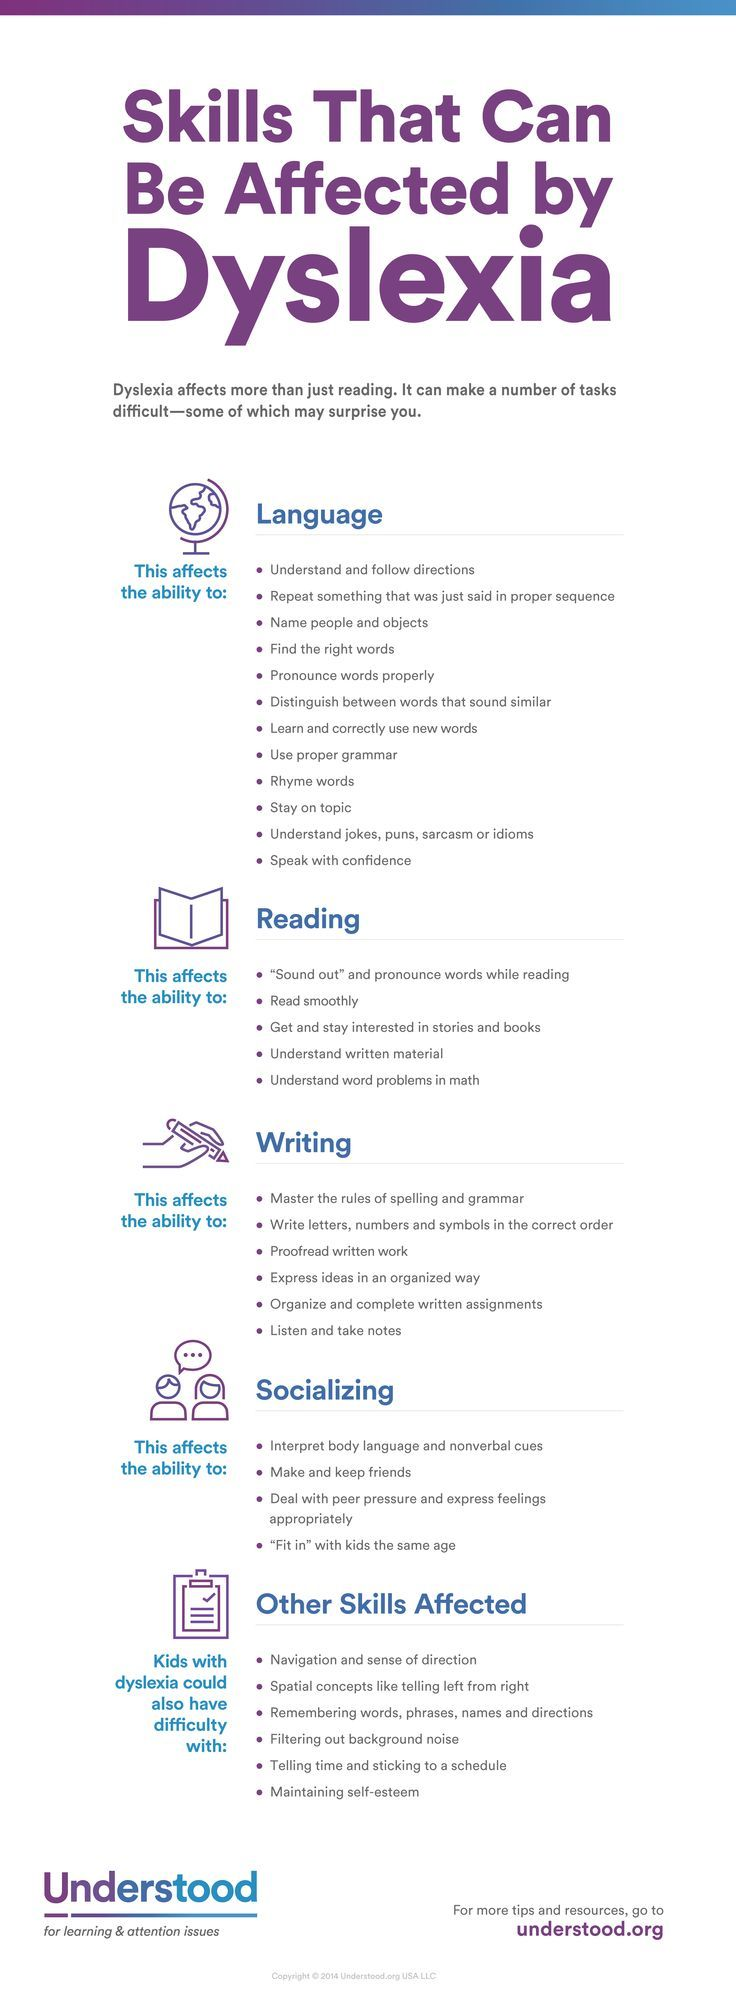 Skills Affected by Dyslexia | Dyslexia | Reading Issues - Understood